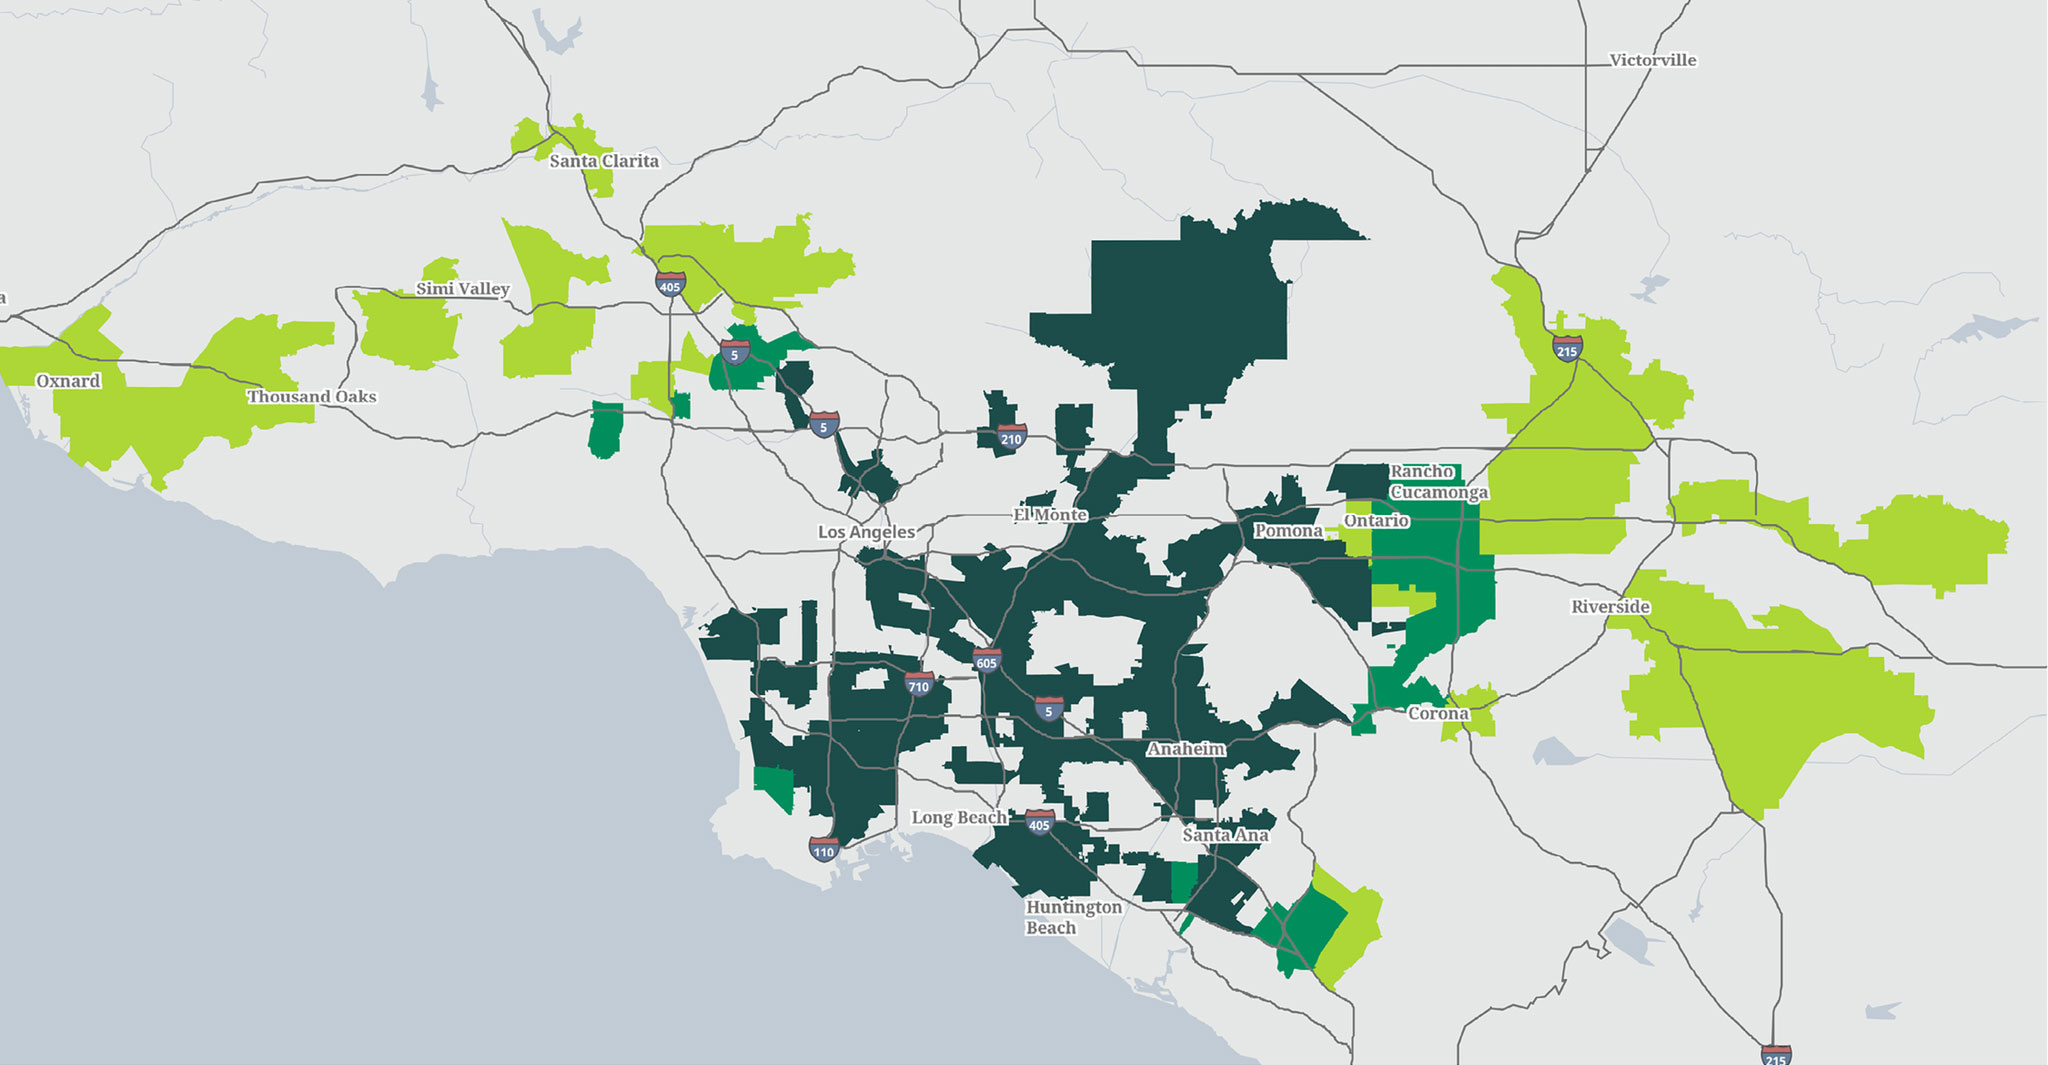 Categorization map - Southern California